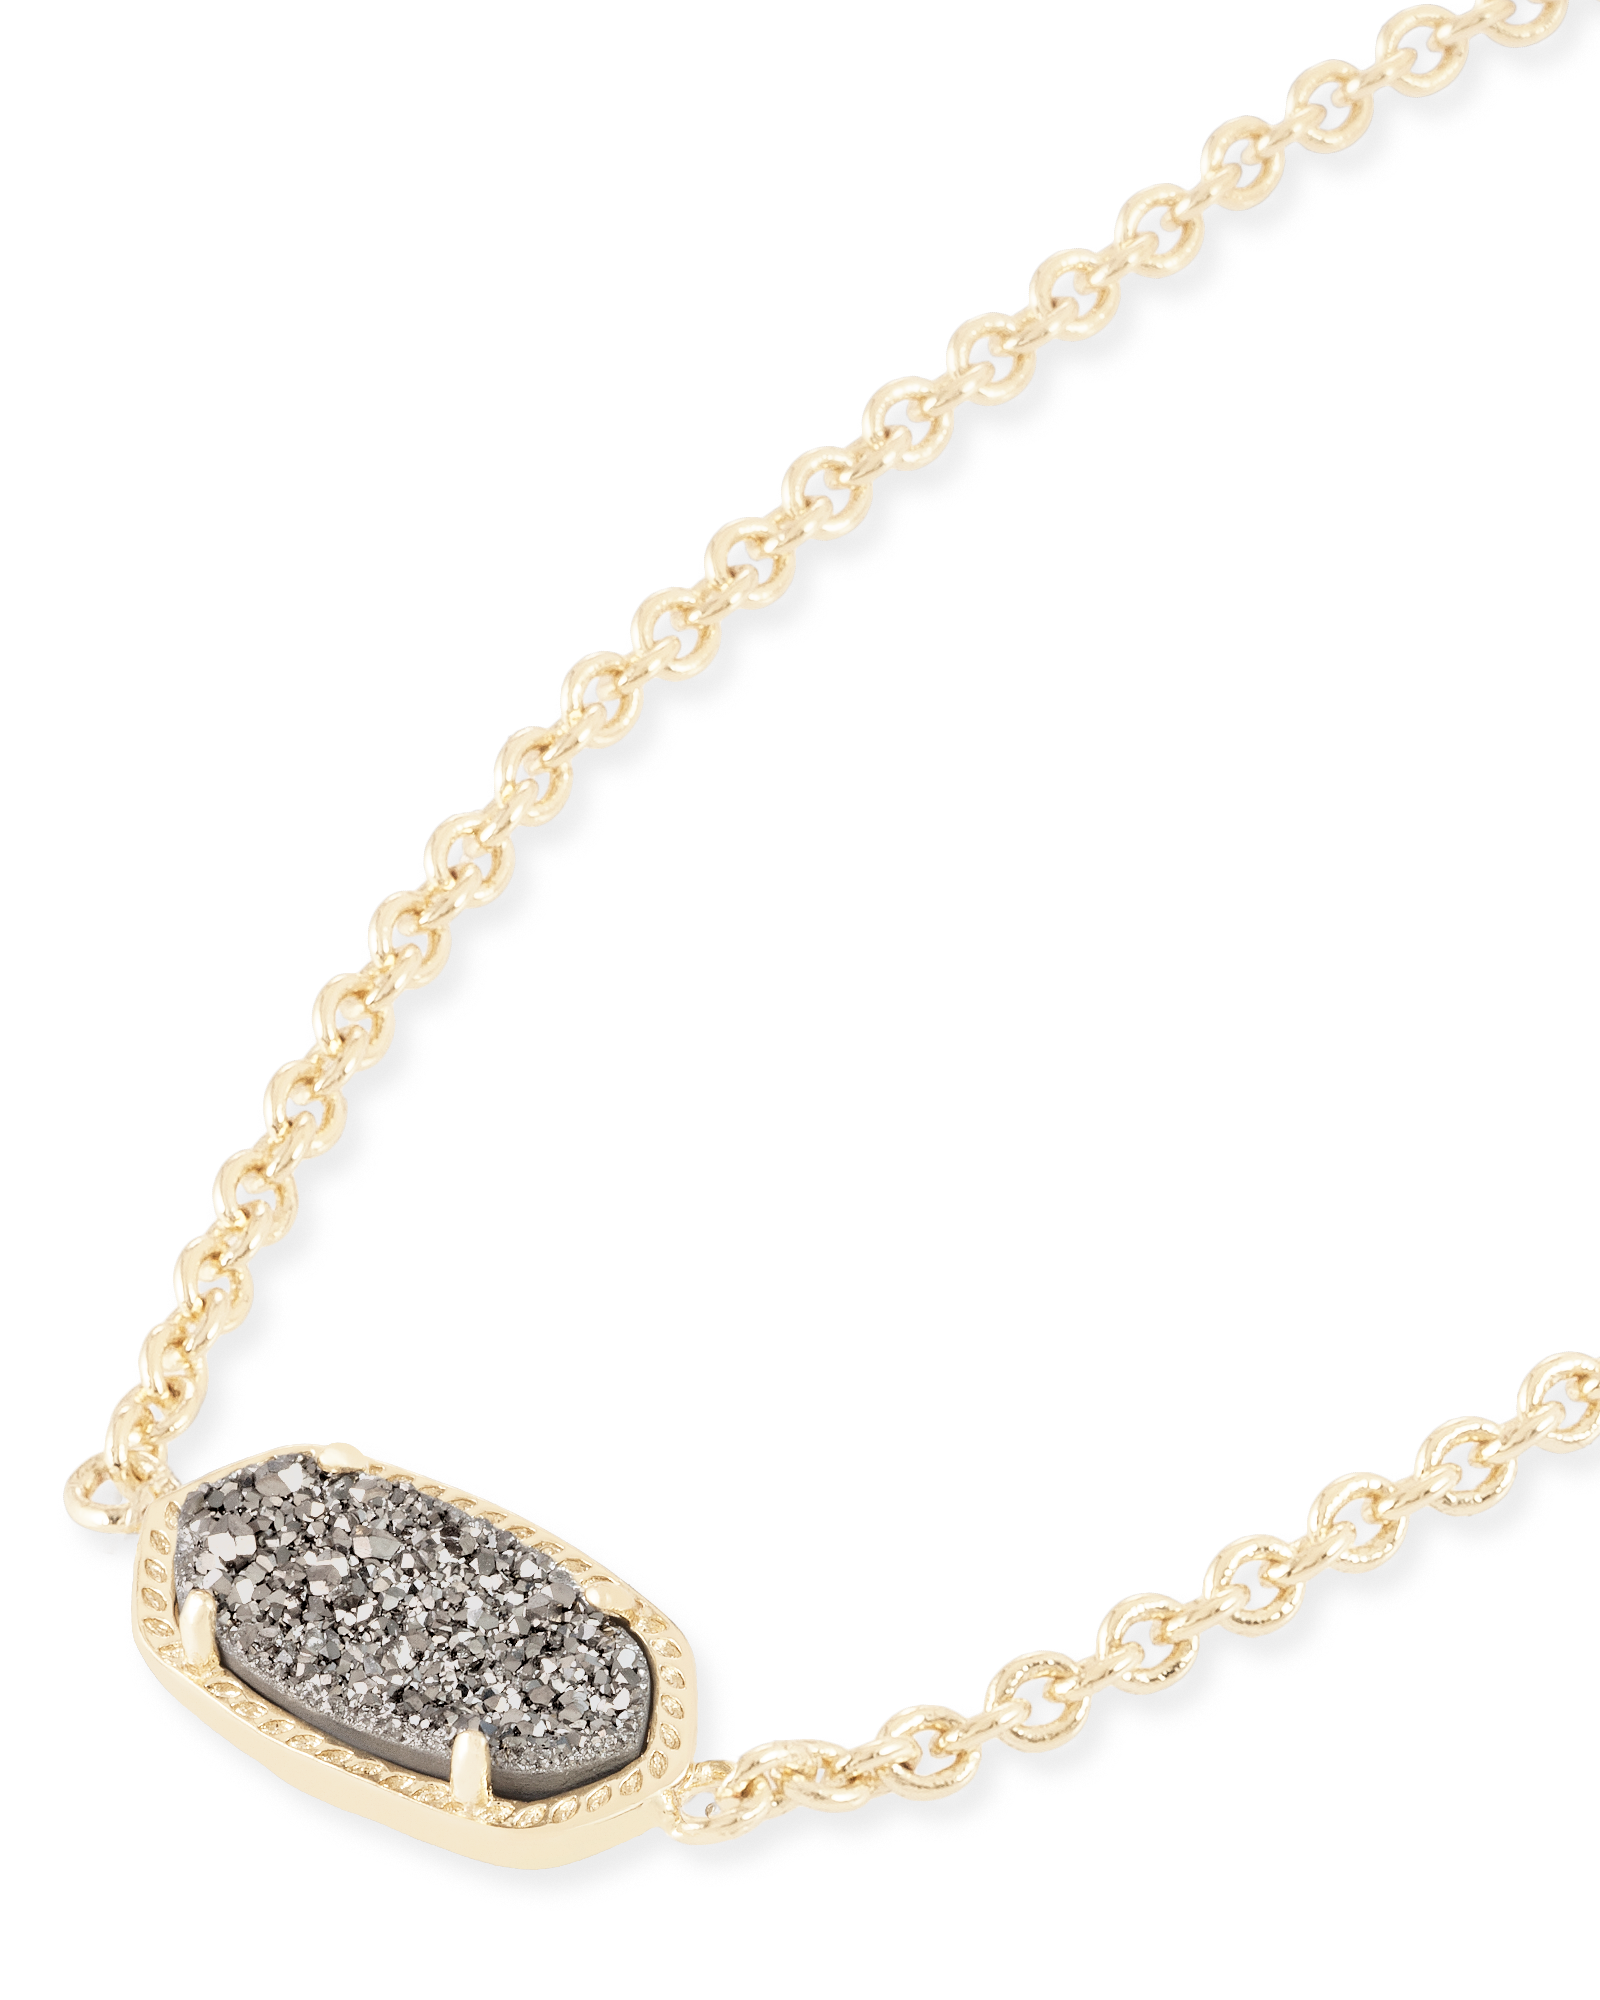 Elaina Gold Adjustable Chain Bracelet in Platinum Drusy